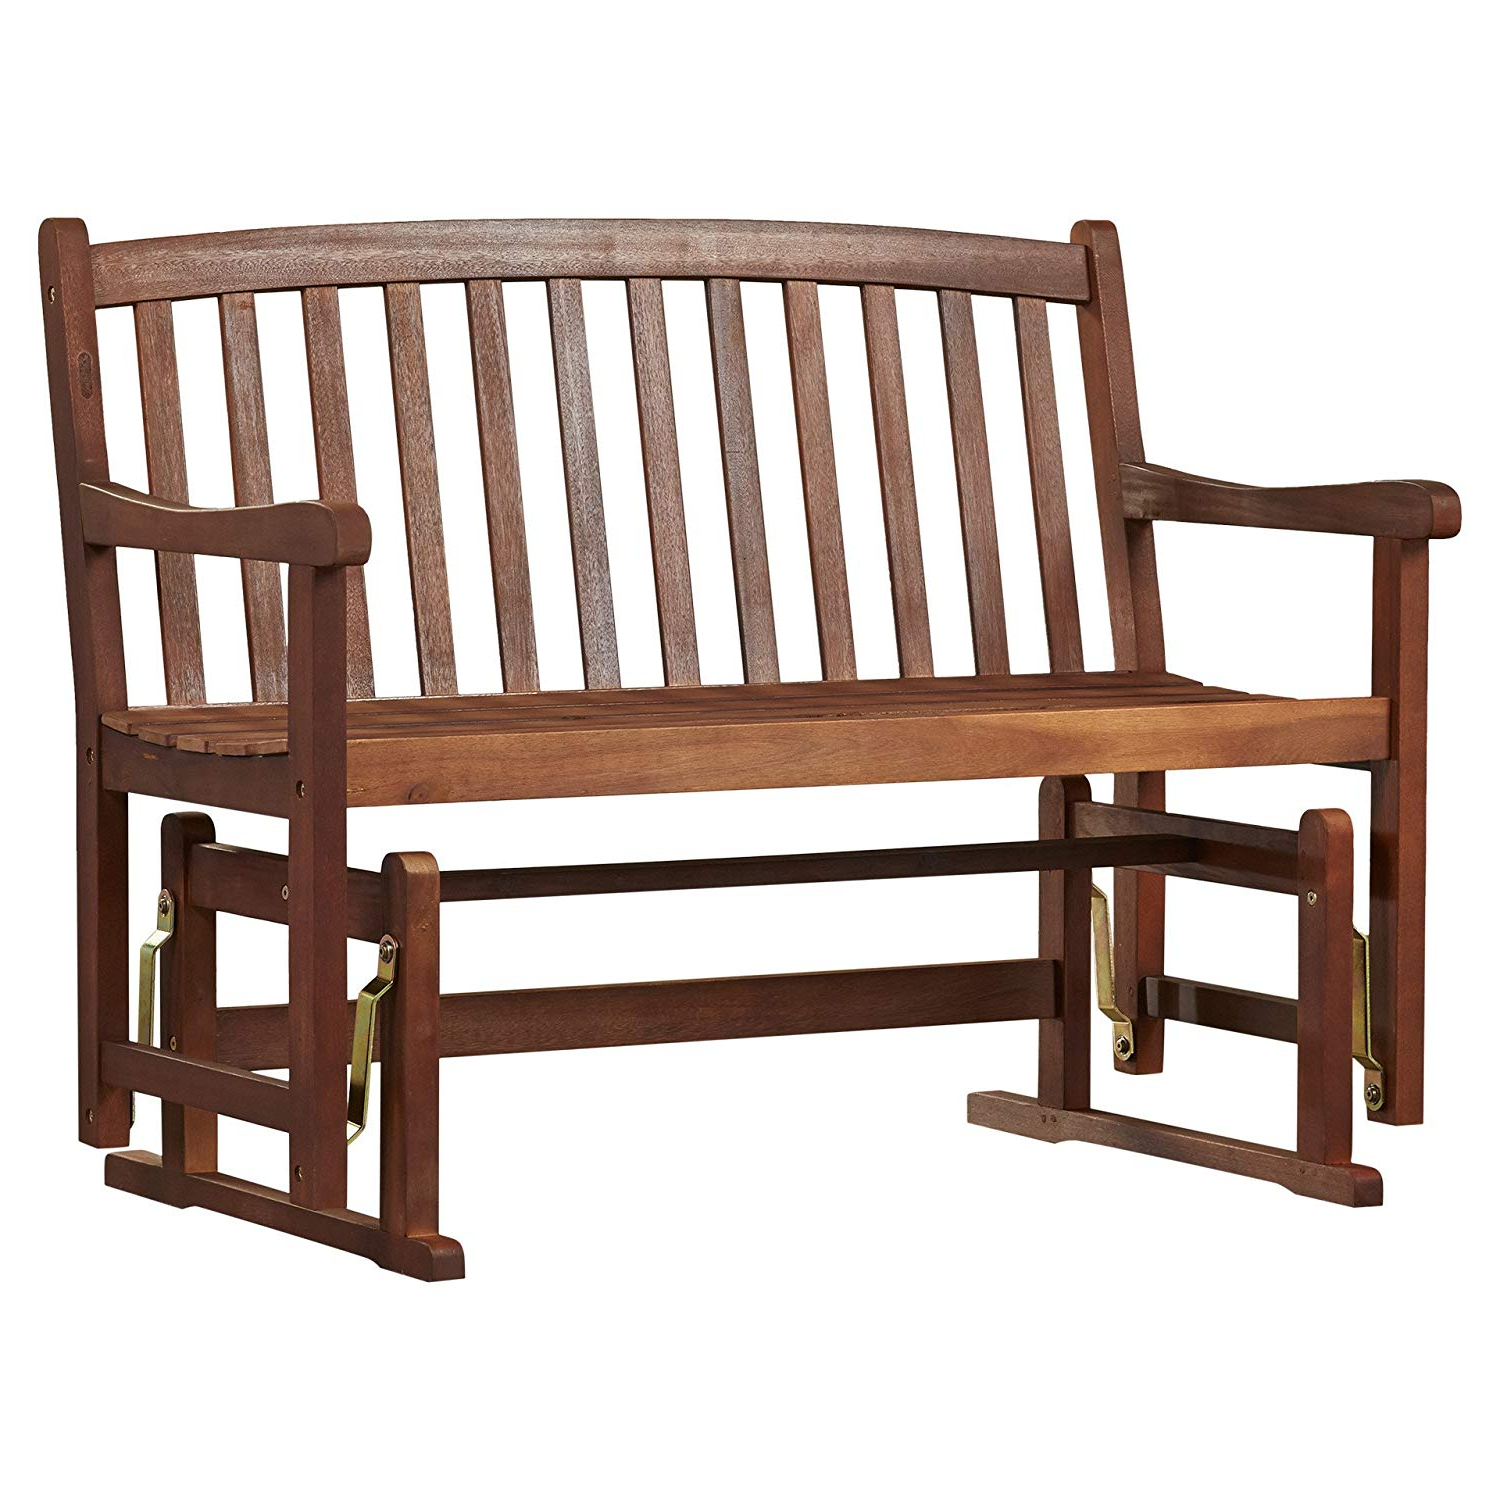 Most Popular Low Back Glider Benches In Amazon : Classic Style Worcester Glider Wood Garden (Gallery 1 of 30)